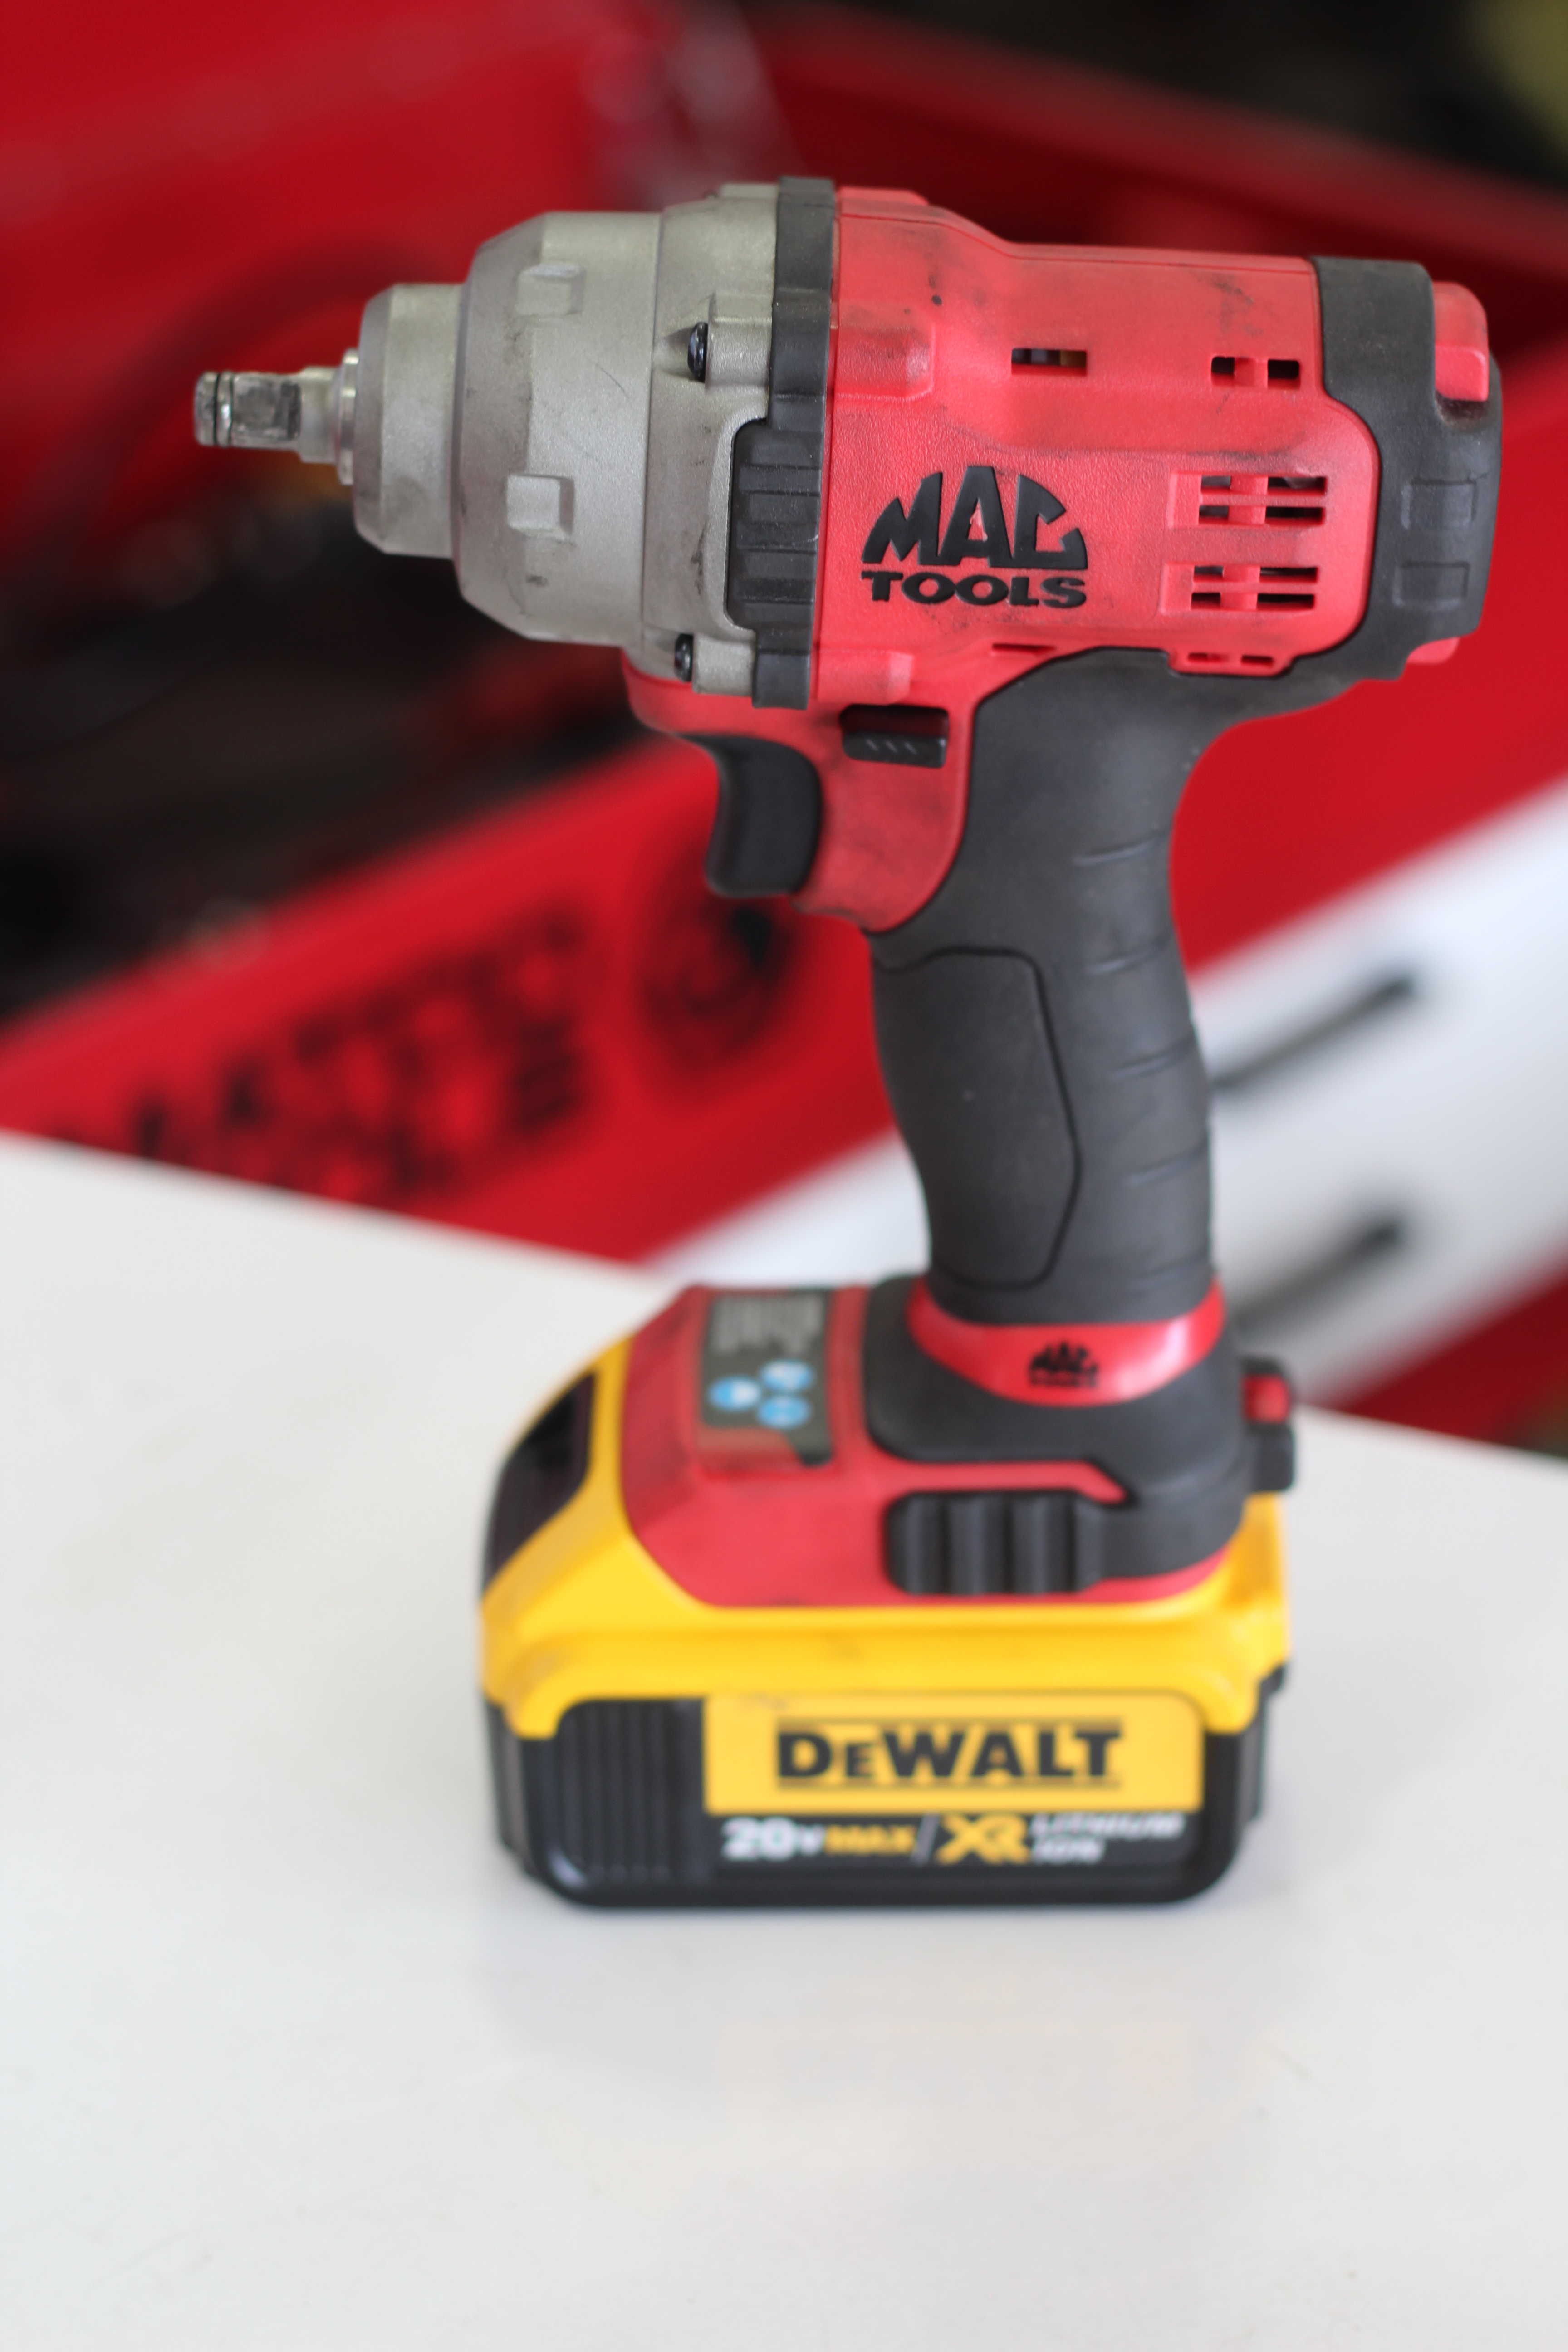 One week with the DeWalt 20v max XR 1/2 impact and Mac Tools